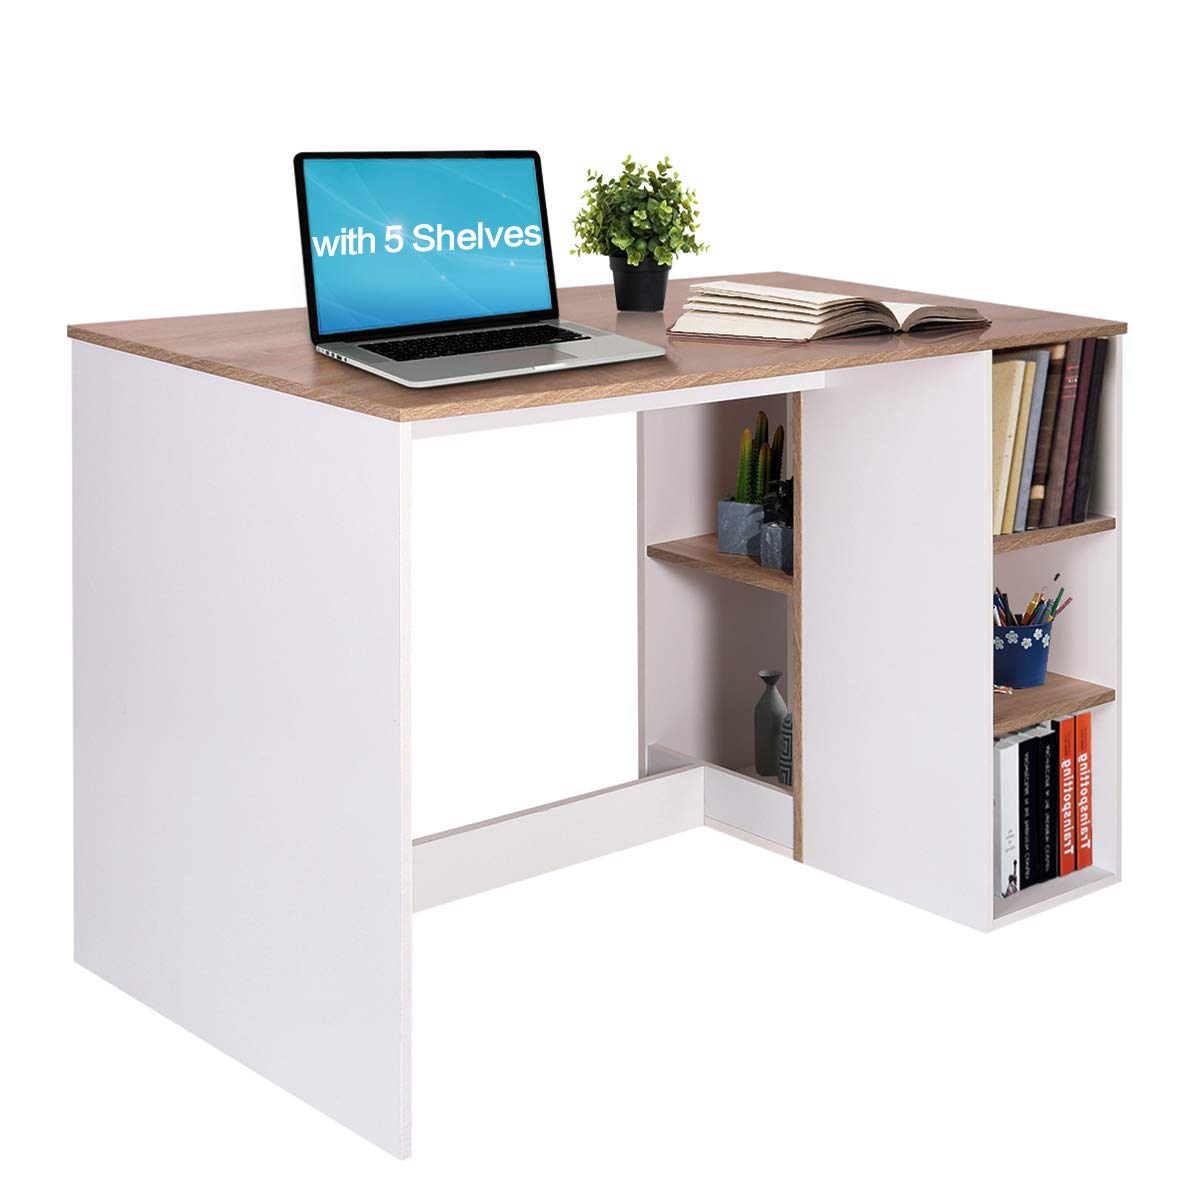 Reception Room Tables With Storage, Large Work Desk With 5 Shelves  Students-study Desk Home-office Pc Laptop Study Table Modern Wood  Workstation With